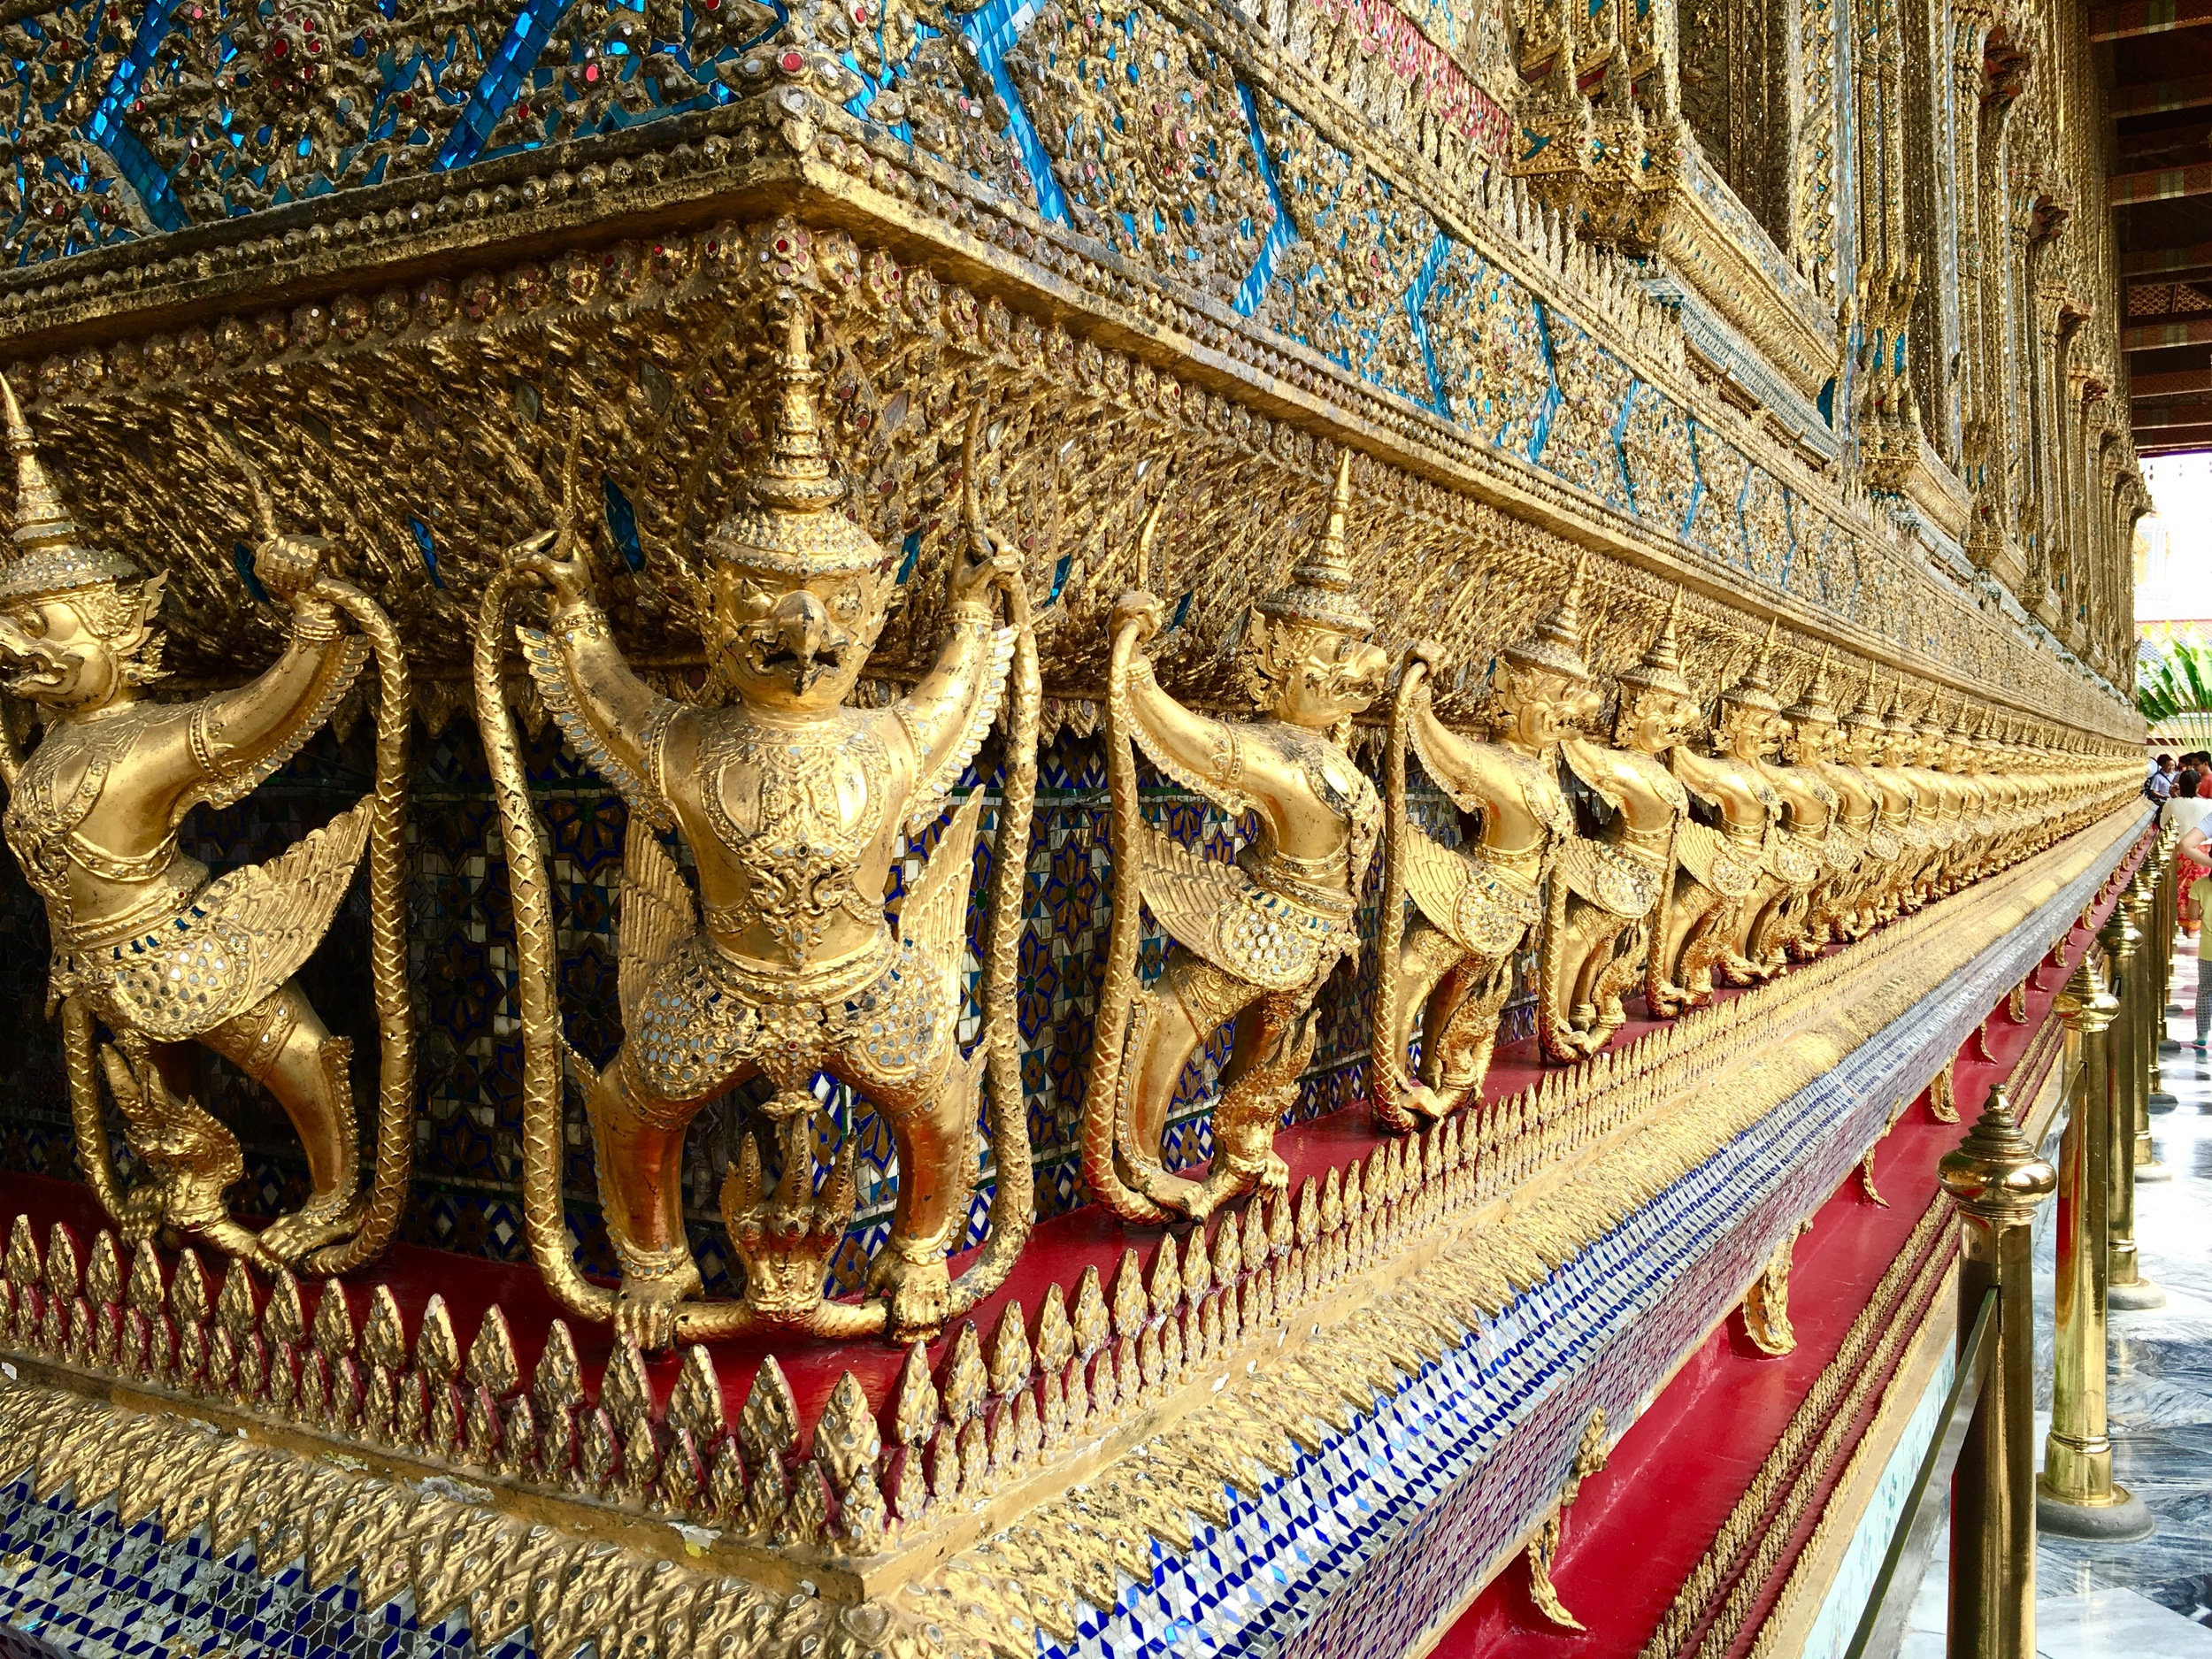 Details of the Grand Palace in Bangkok, Thailand.